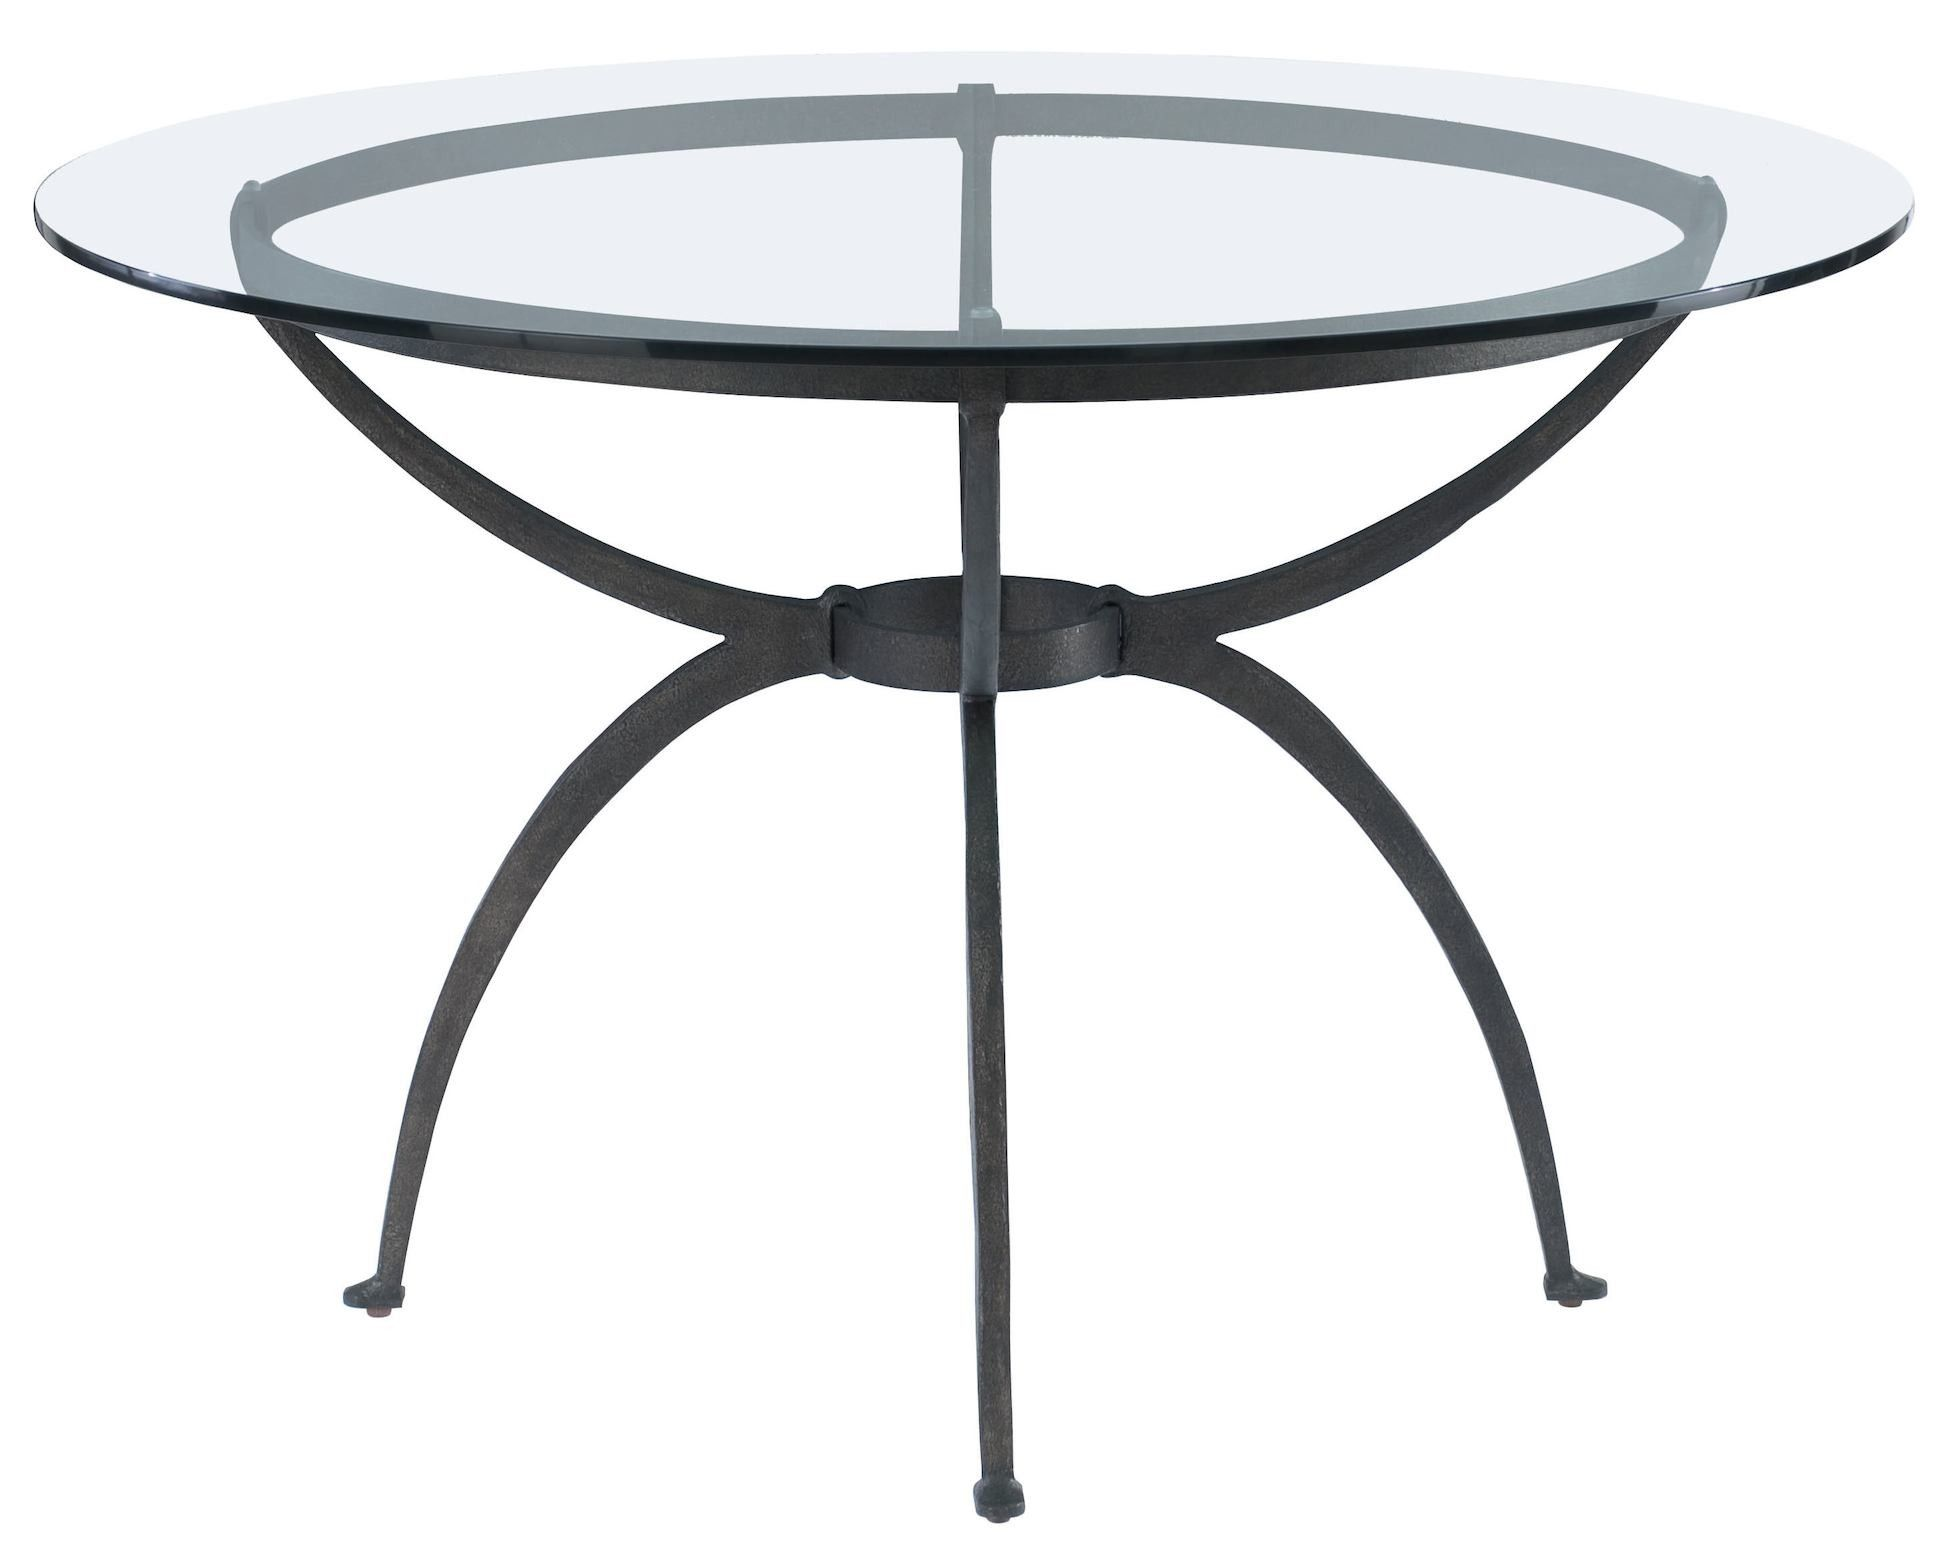 Wrought Iron Console Table With Glass Top Google Search Round Glass Kitchen Table Glass Top Dining Table Glass Dining Room Table